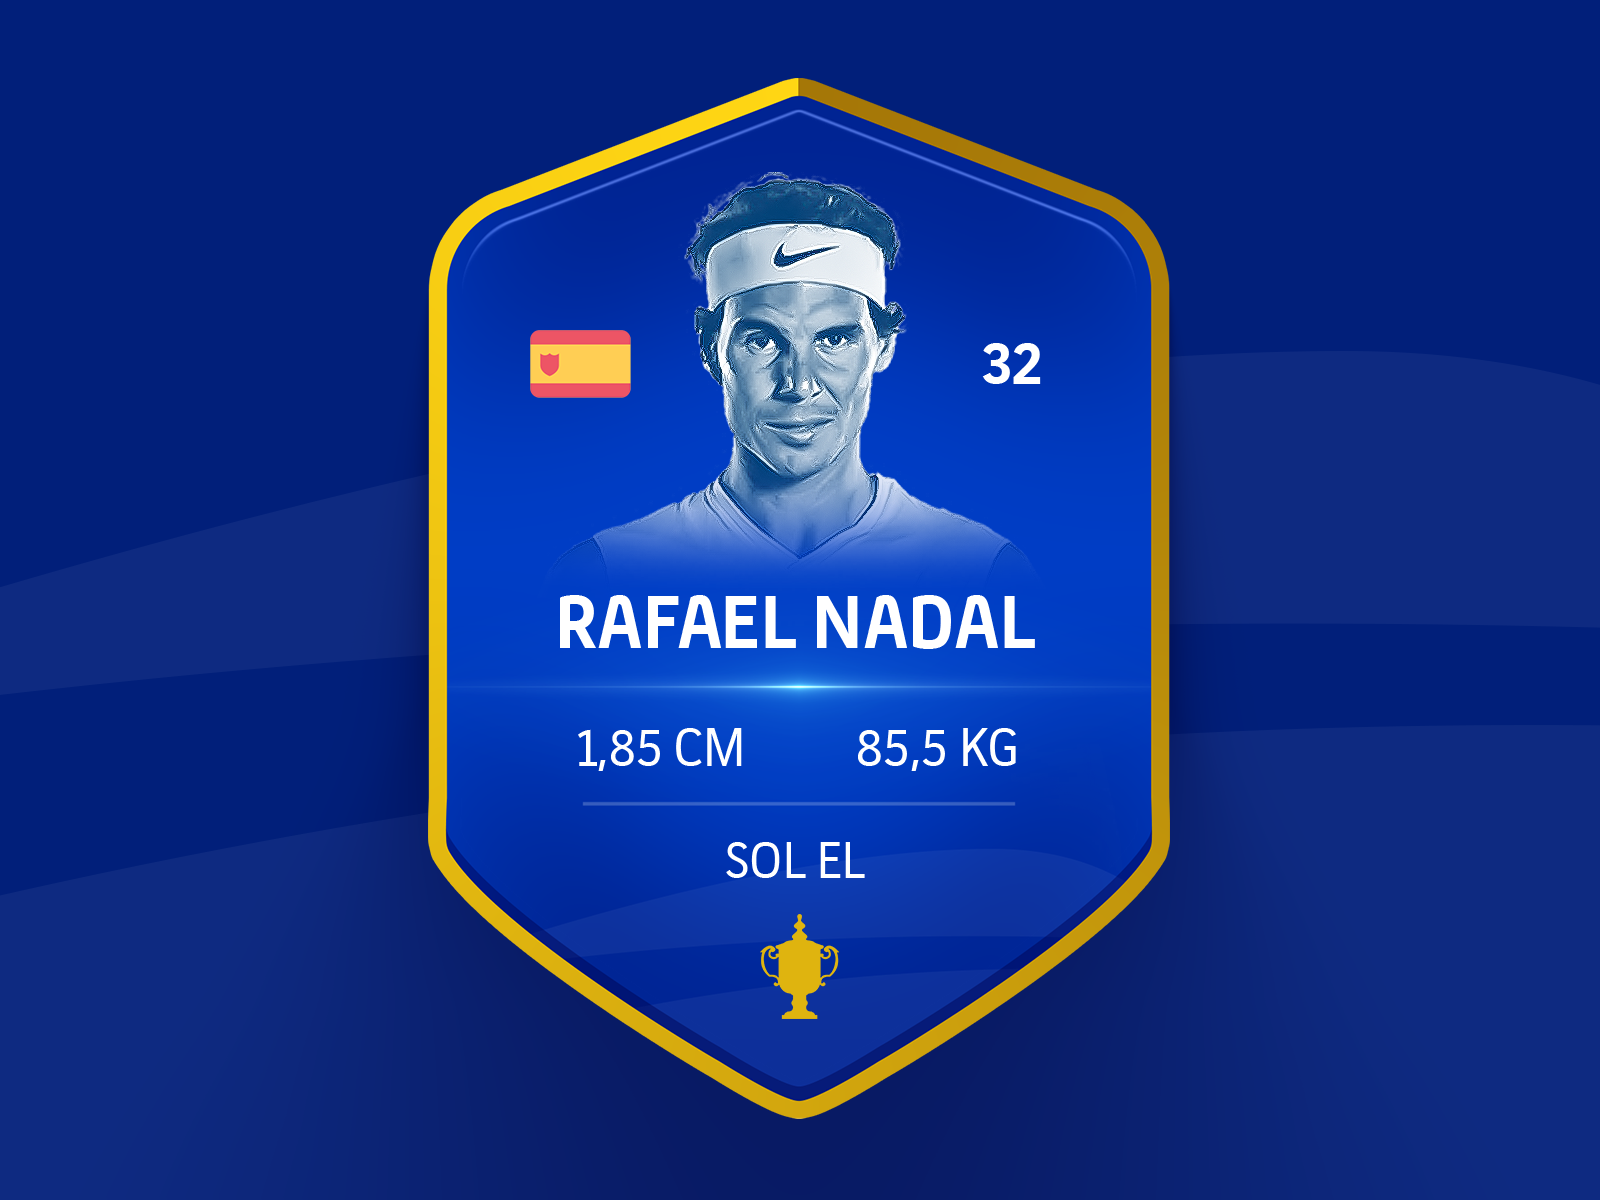 Rafael Nadal Card Design By Ahmet Ozdemir On Dribbble